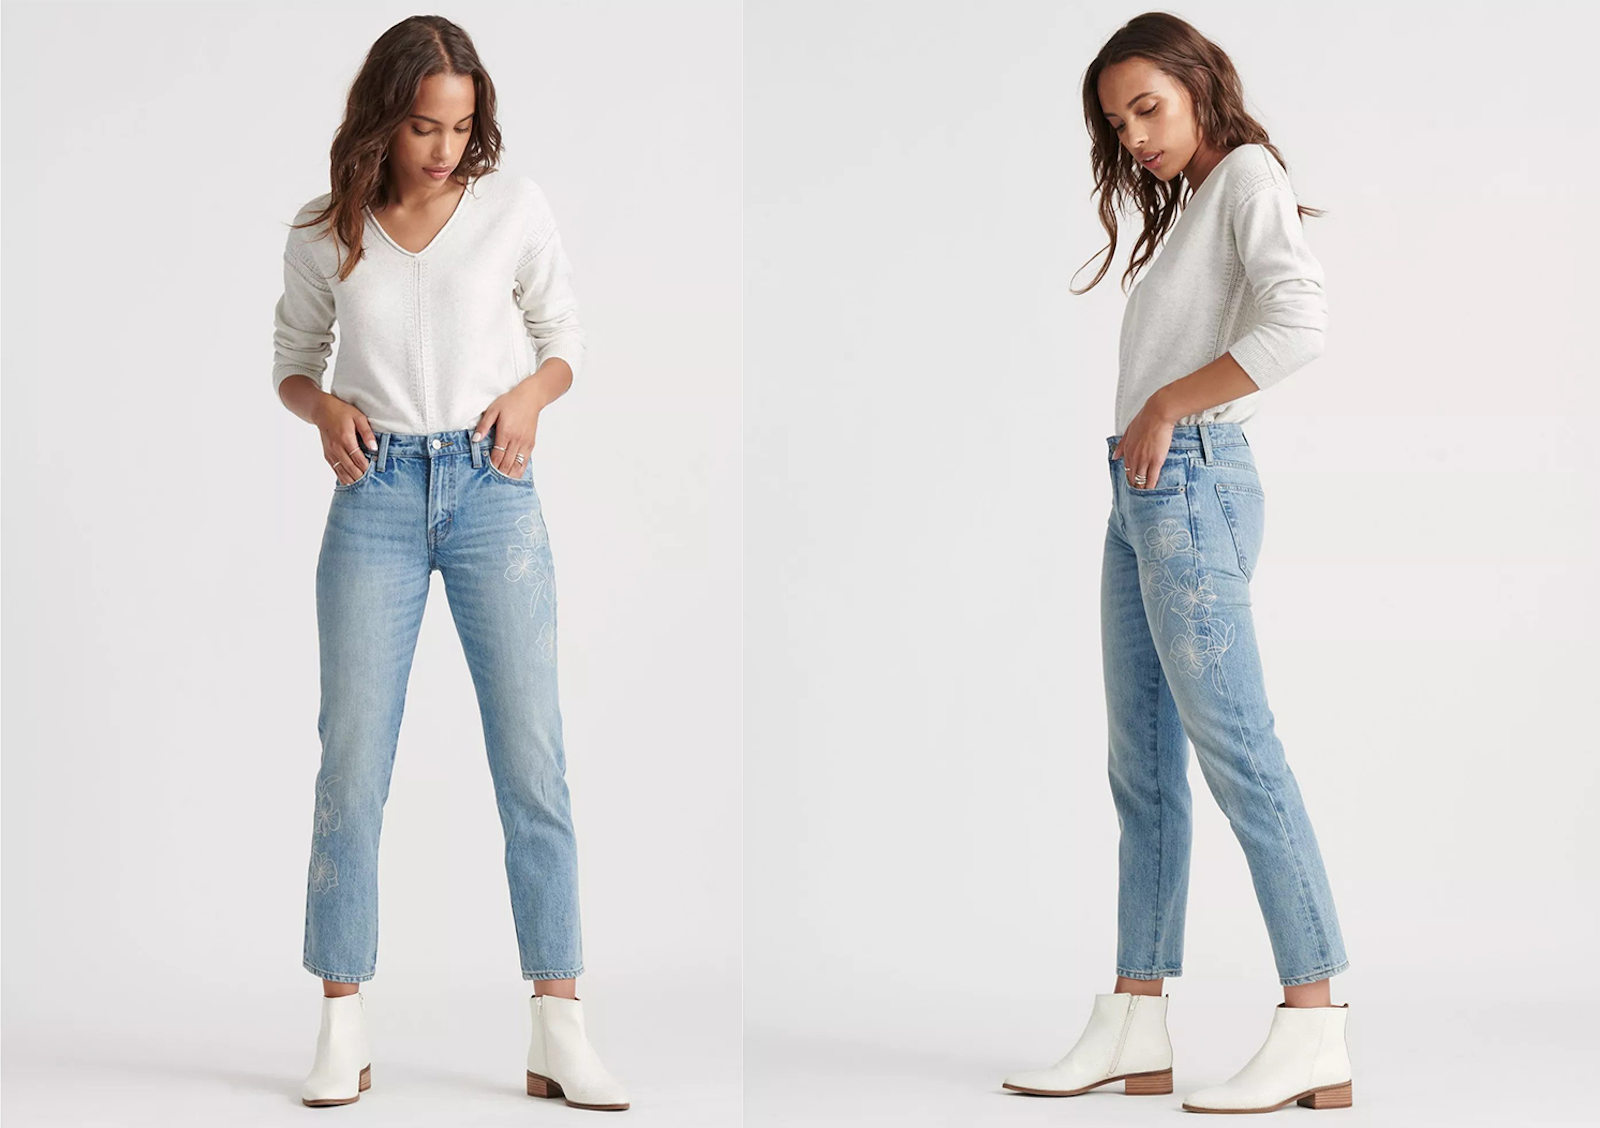 Front and side views of a woman wearing the Mid Rise Sienna Slim Boyfriend Jeans.